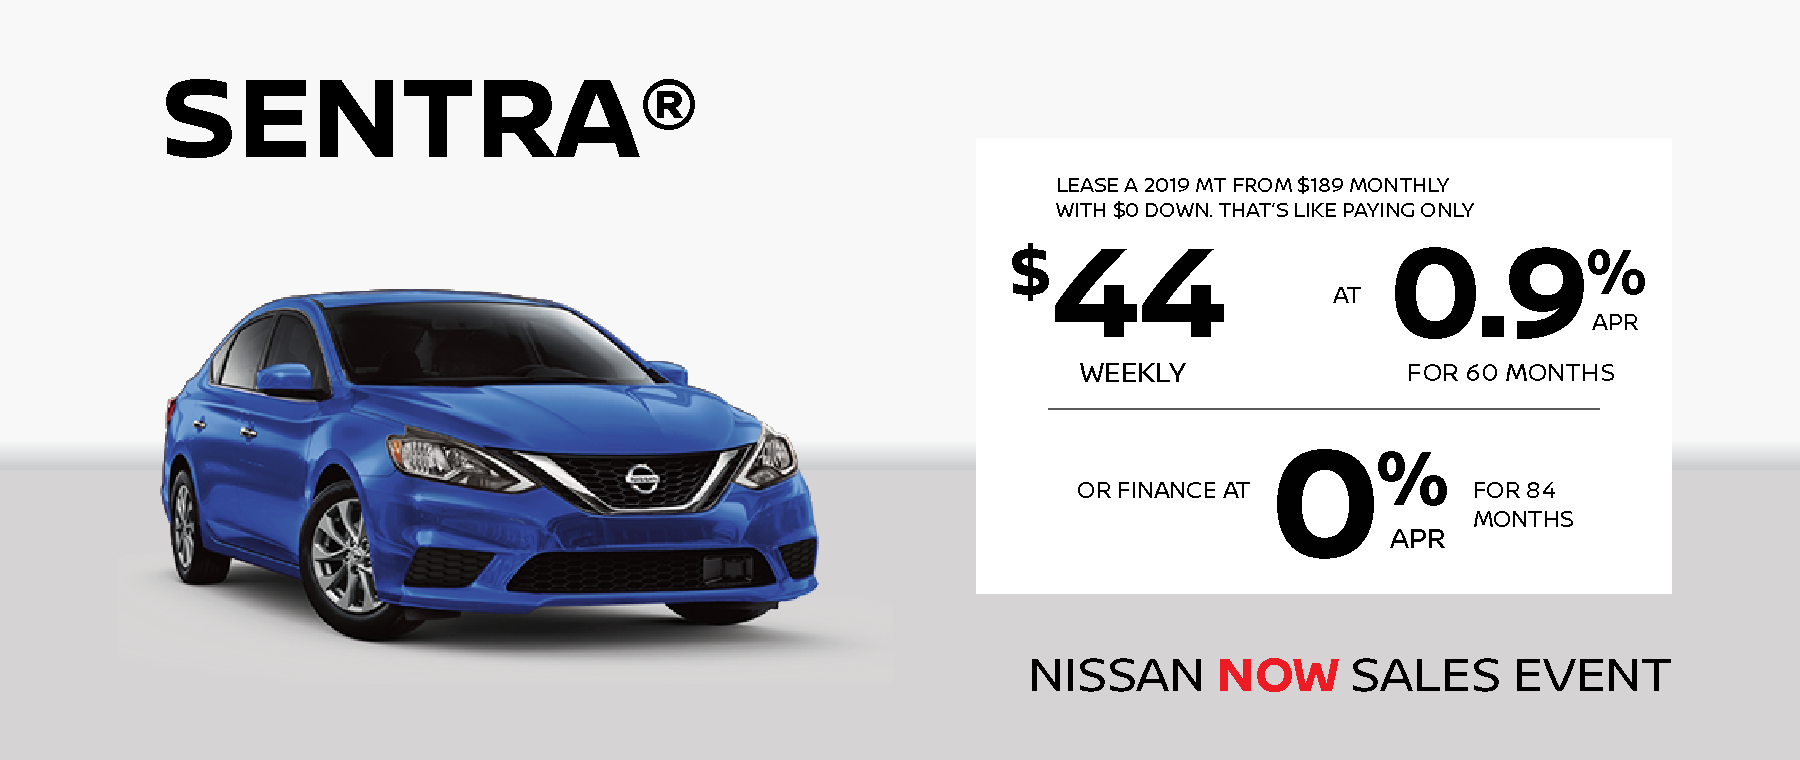 Sentra Lease Deal